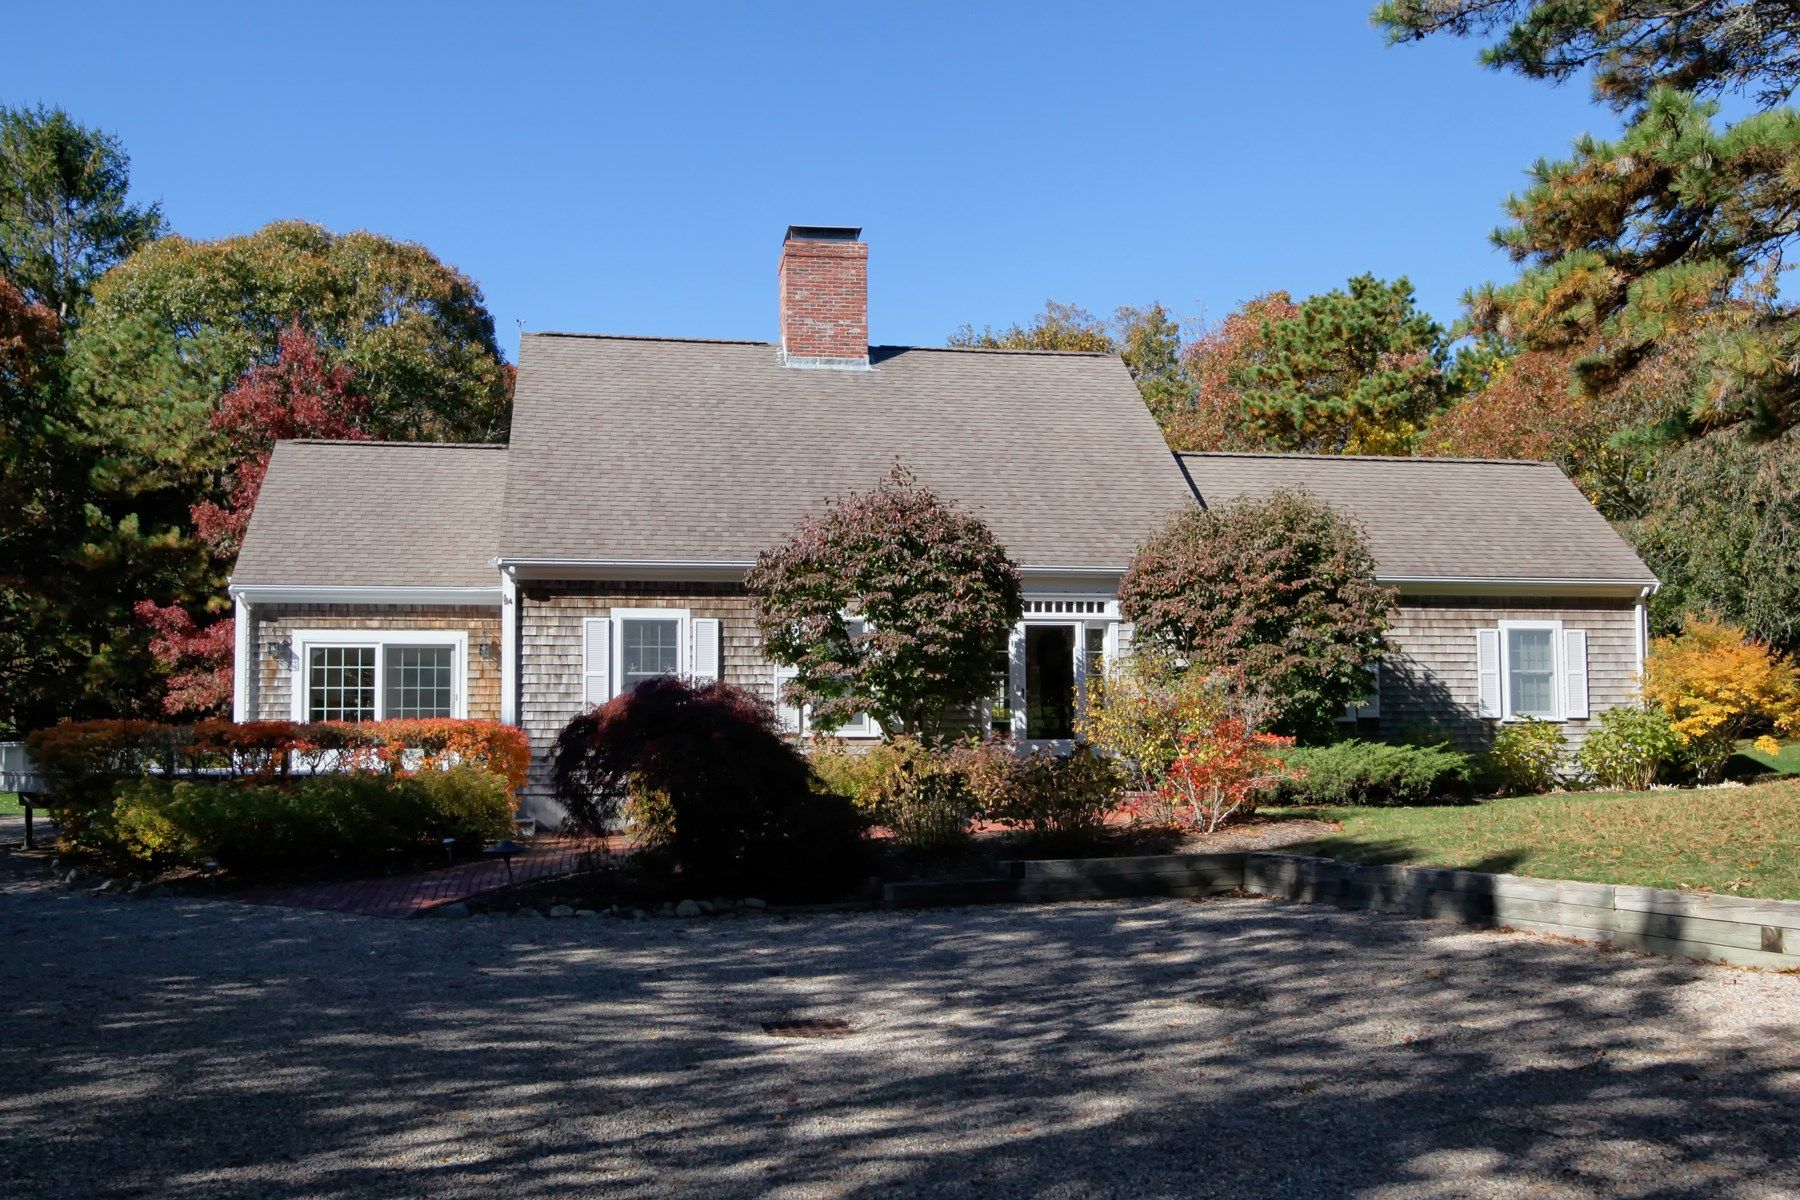 Single Family Home for Sale at Magical Osterville Setting 70 Eel River Road Osterville, Massachusetts, 02655 United States